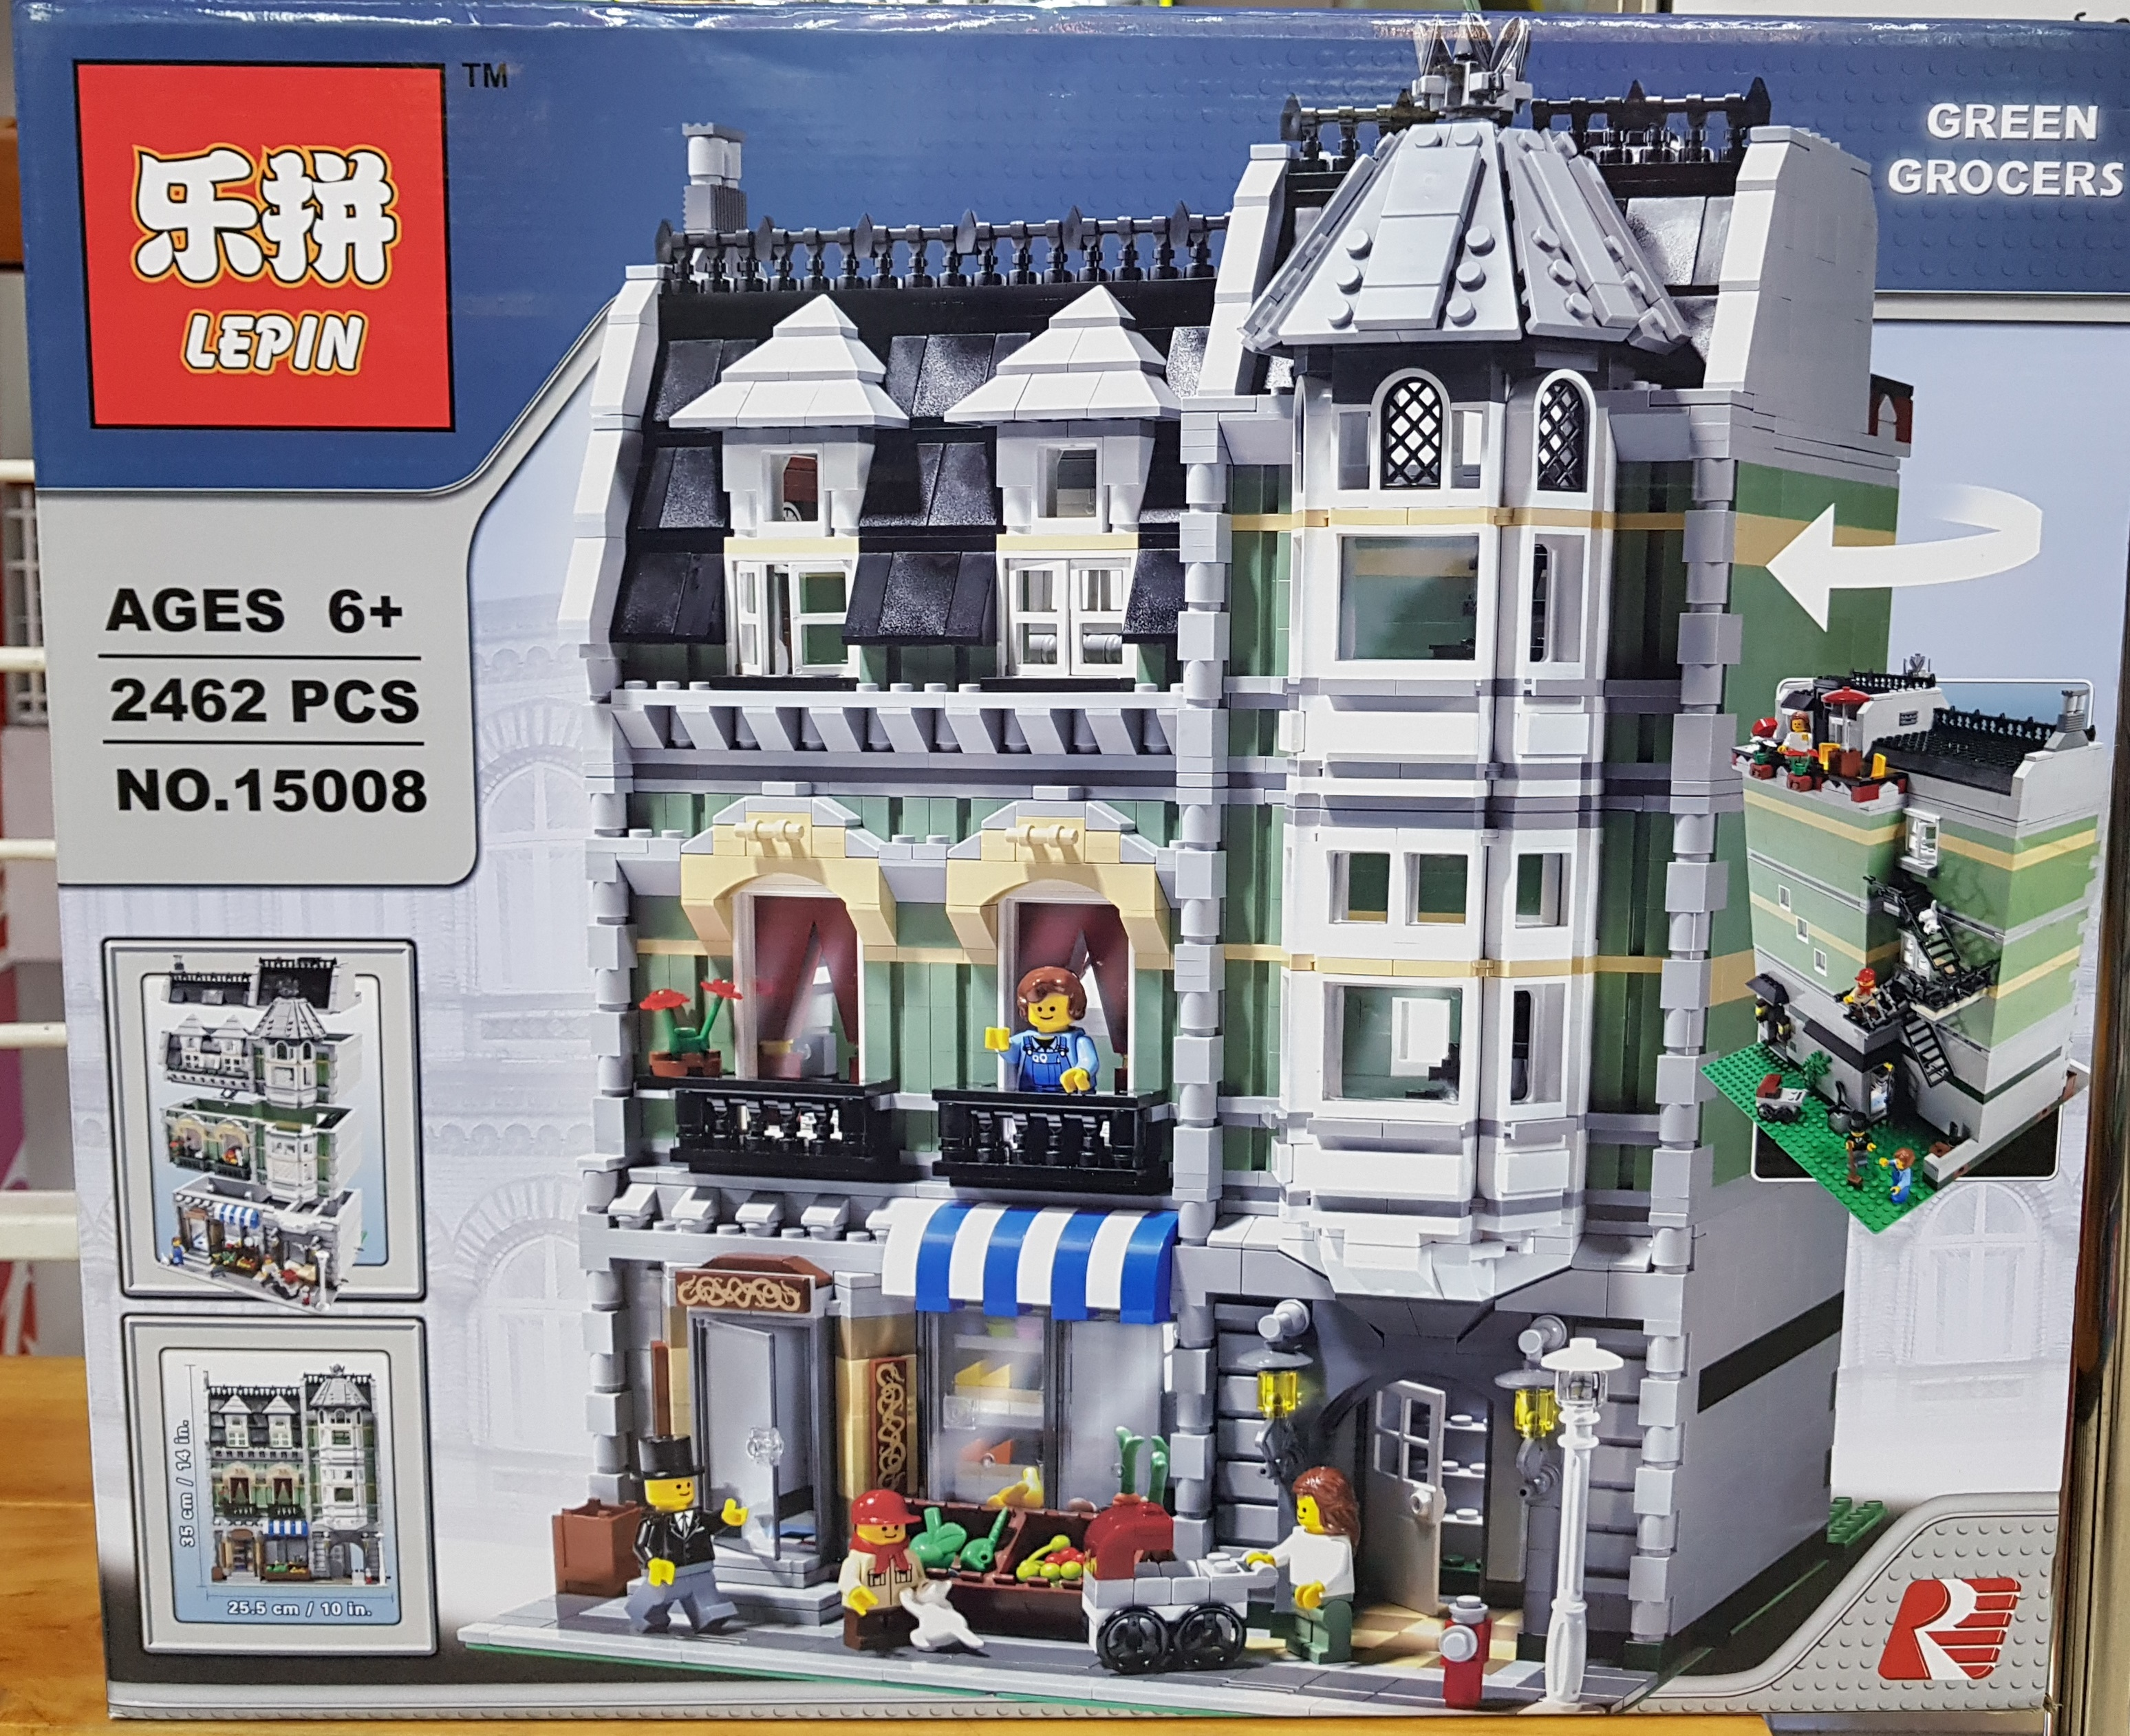 LEPIN GREEN GROCERS 15008 (2462ชิ้น)